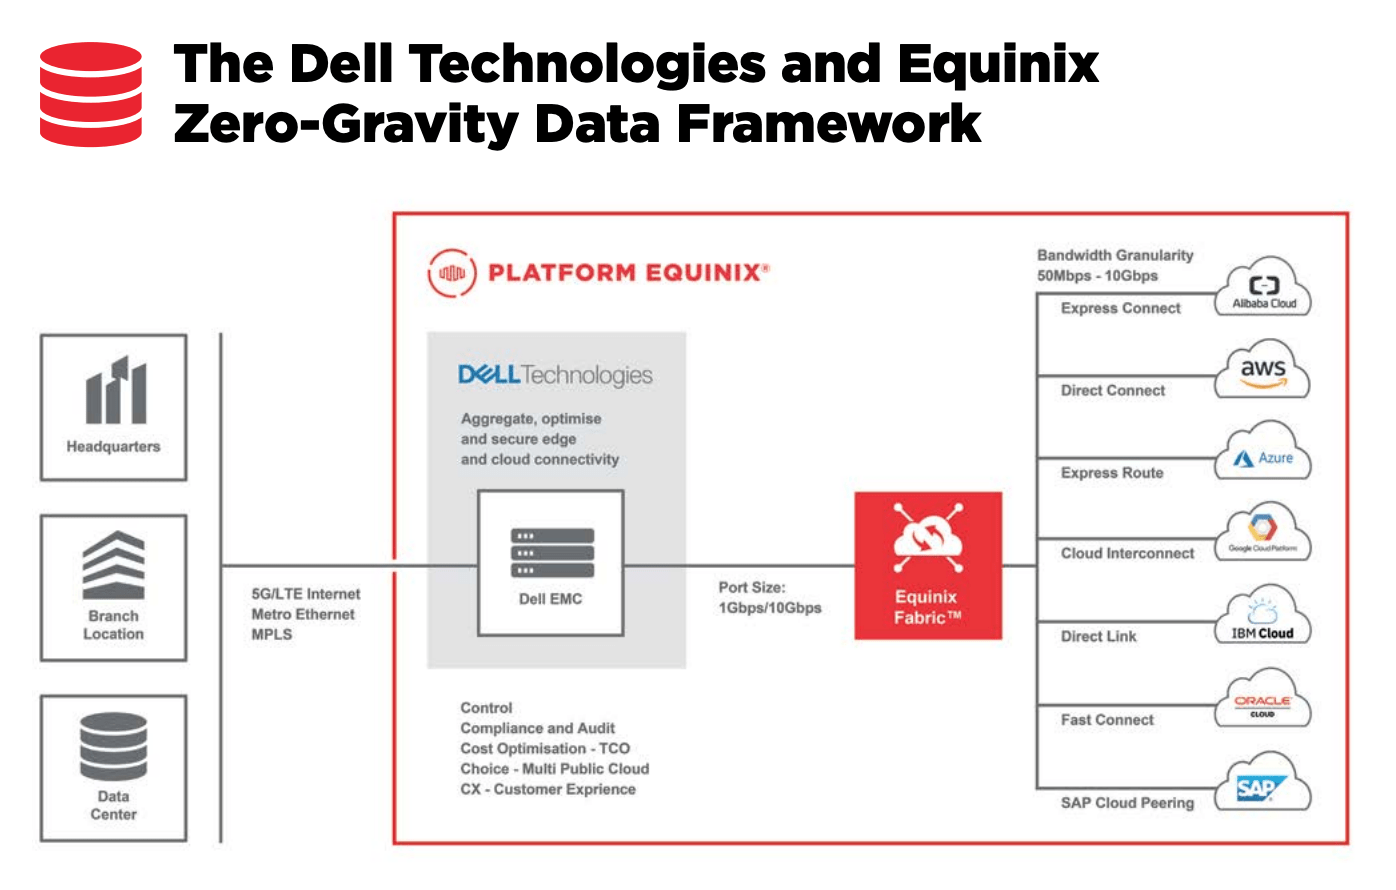 Dell Technologies and Equinix's Zero-Gravity Data Framework, Designing a Data-First Strategy for Financial Services- Foundations of Digital Transformation in Financial Services, Dell Technologies and Equinix